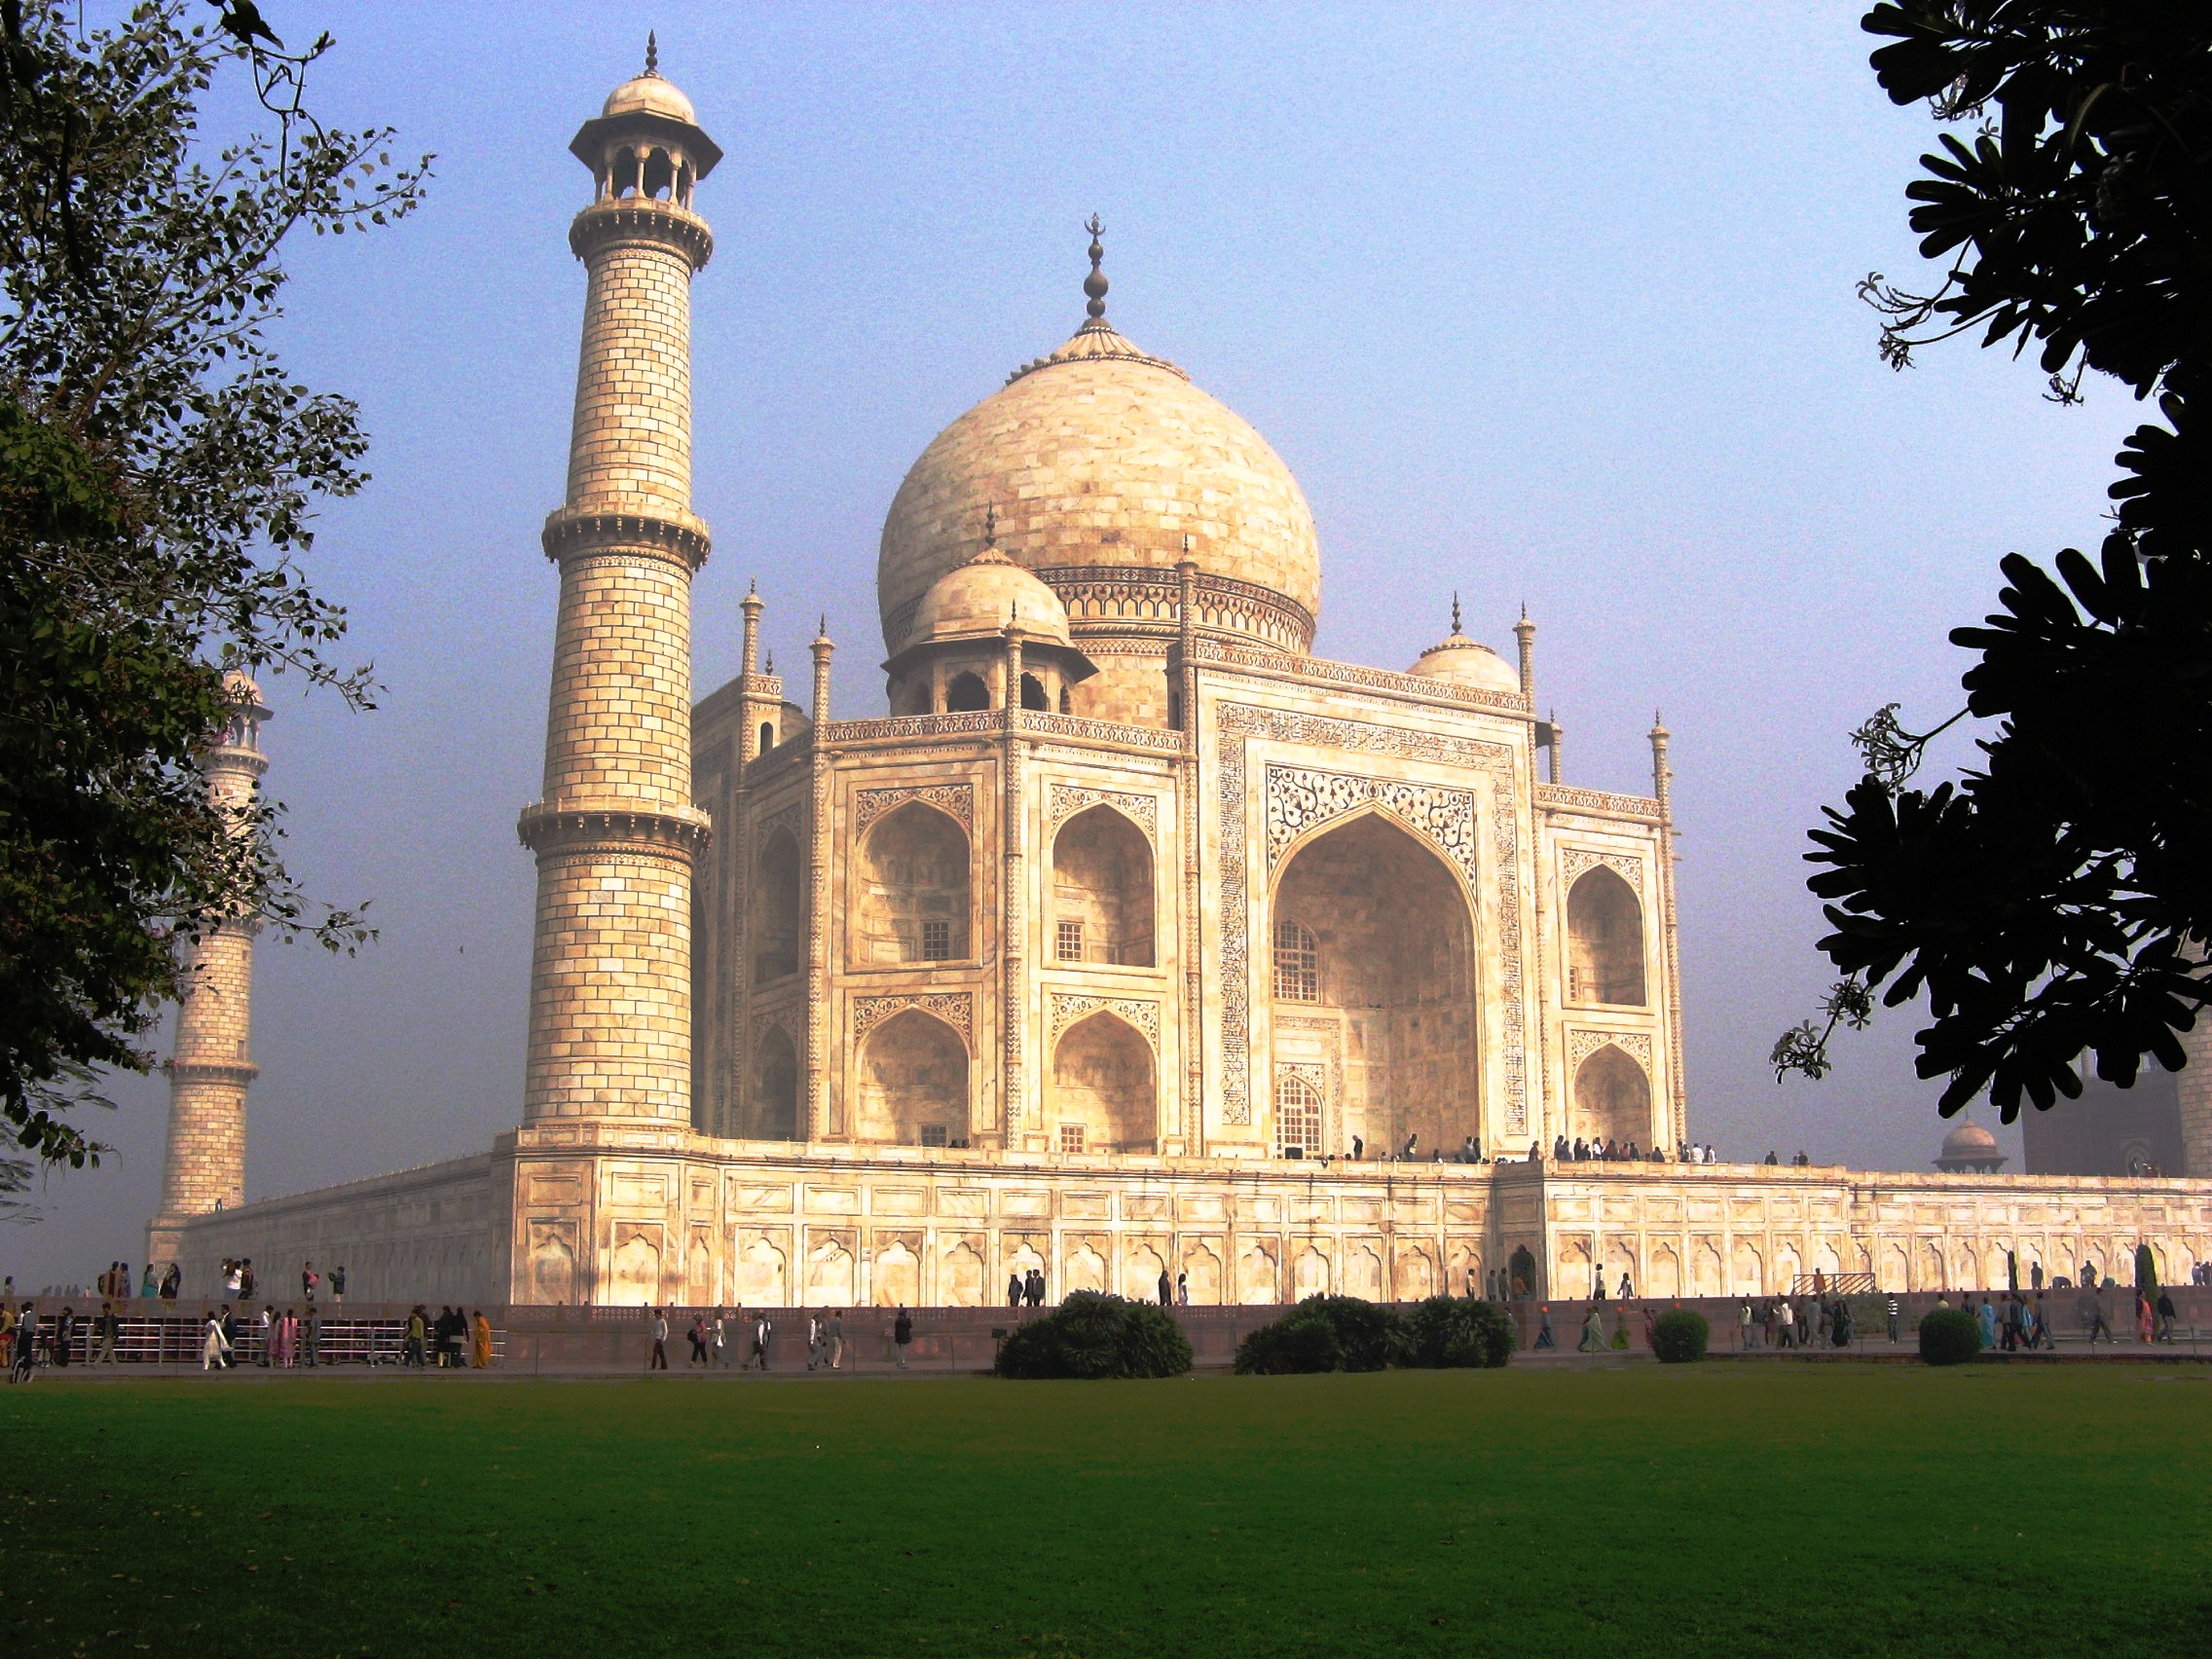 Taj Mahal from the lawn | © Ramesh NG, Flickr